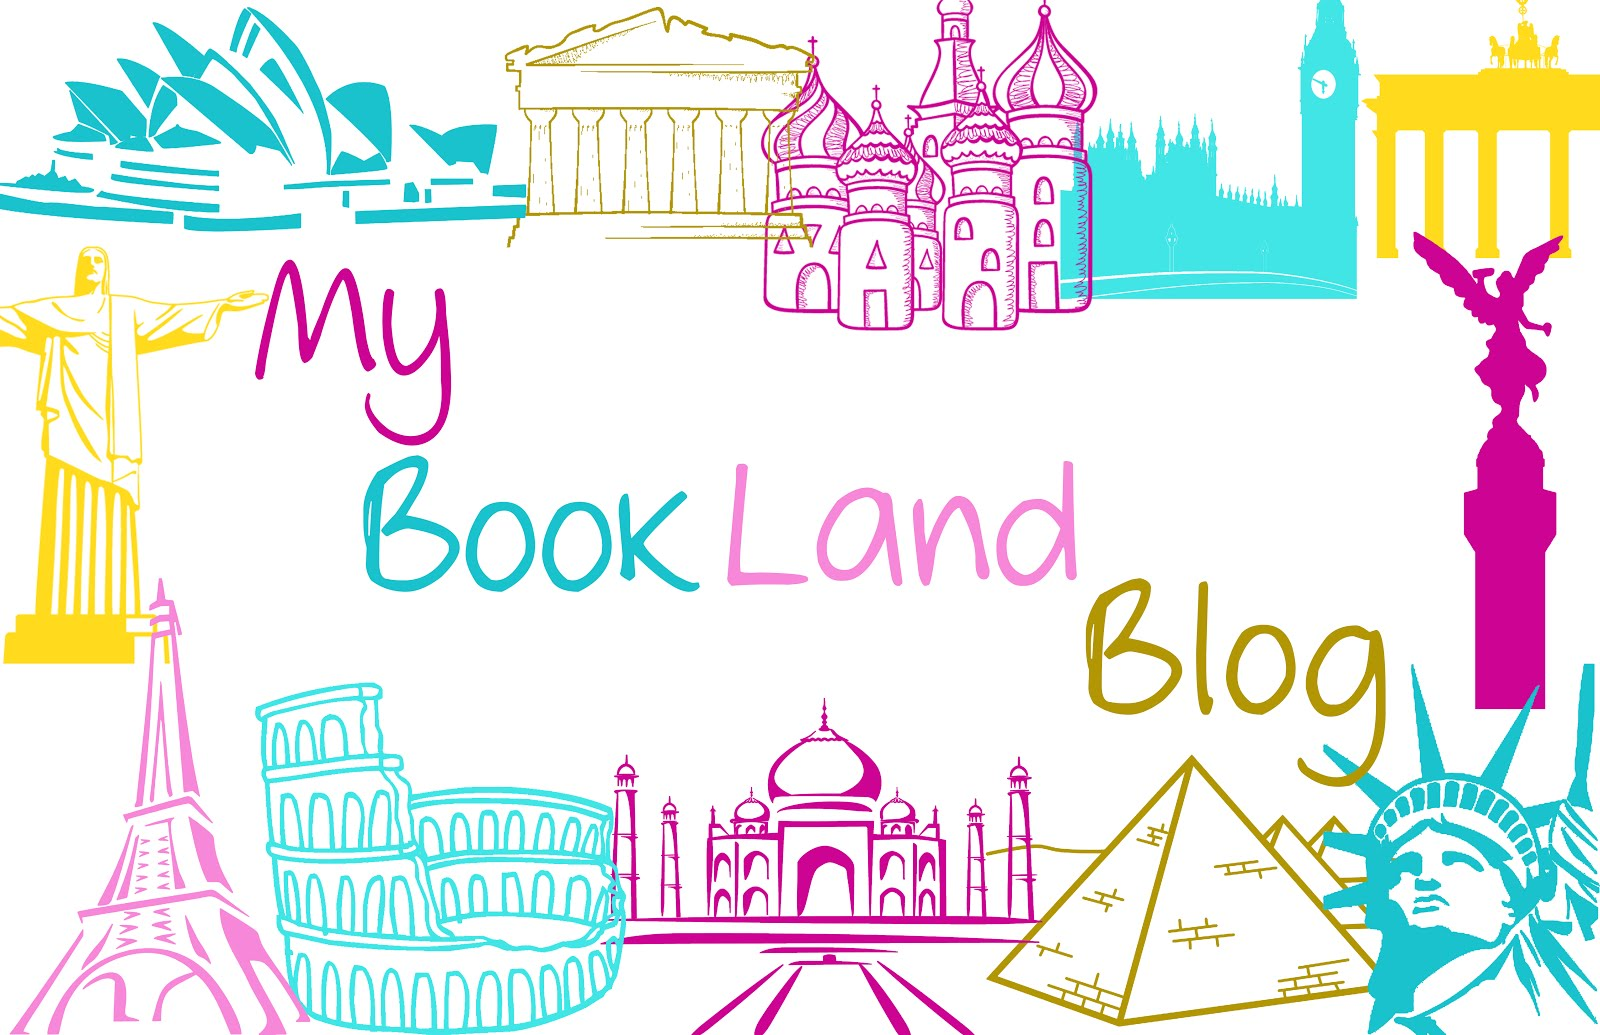 My Book Land